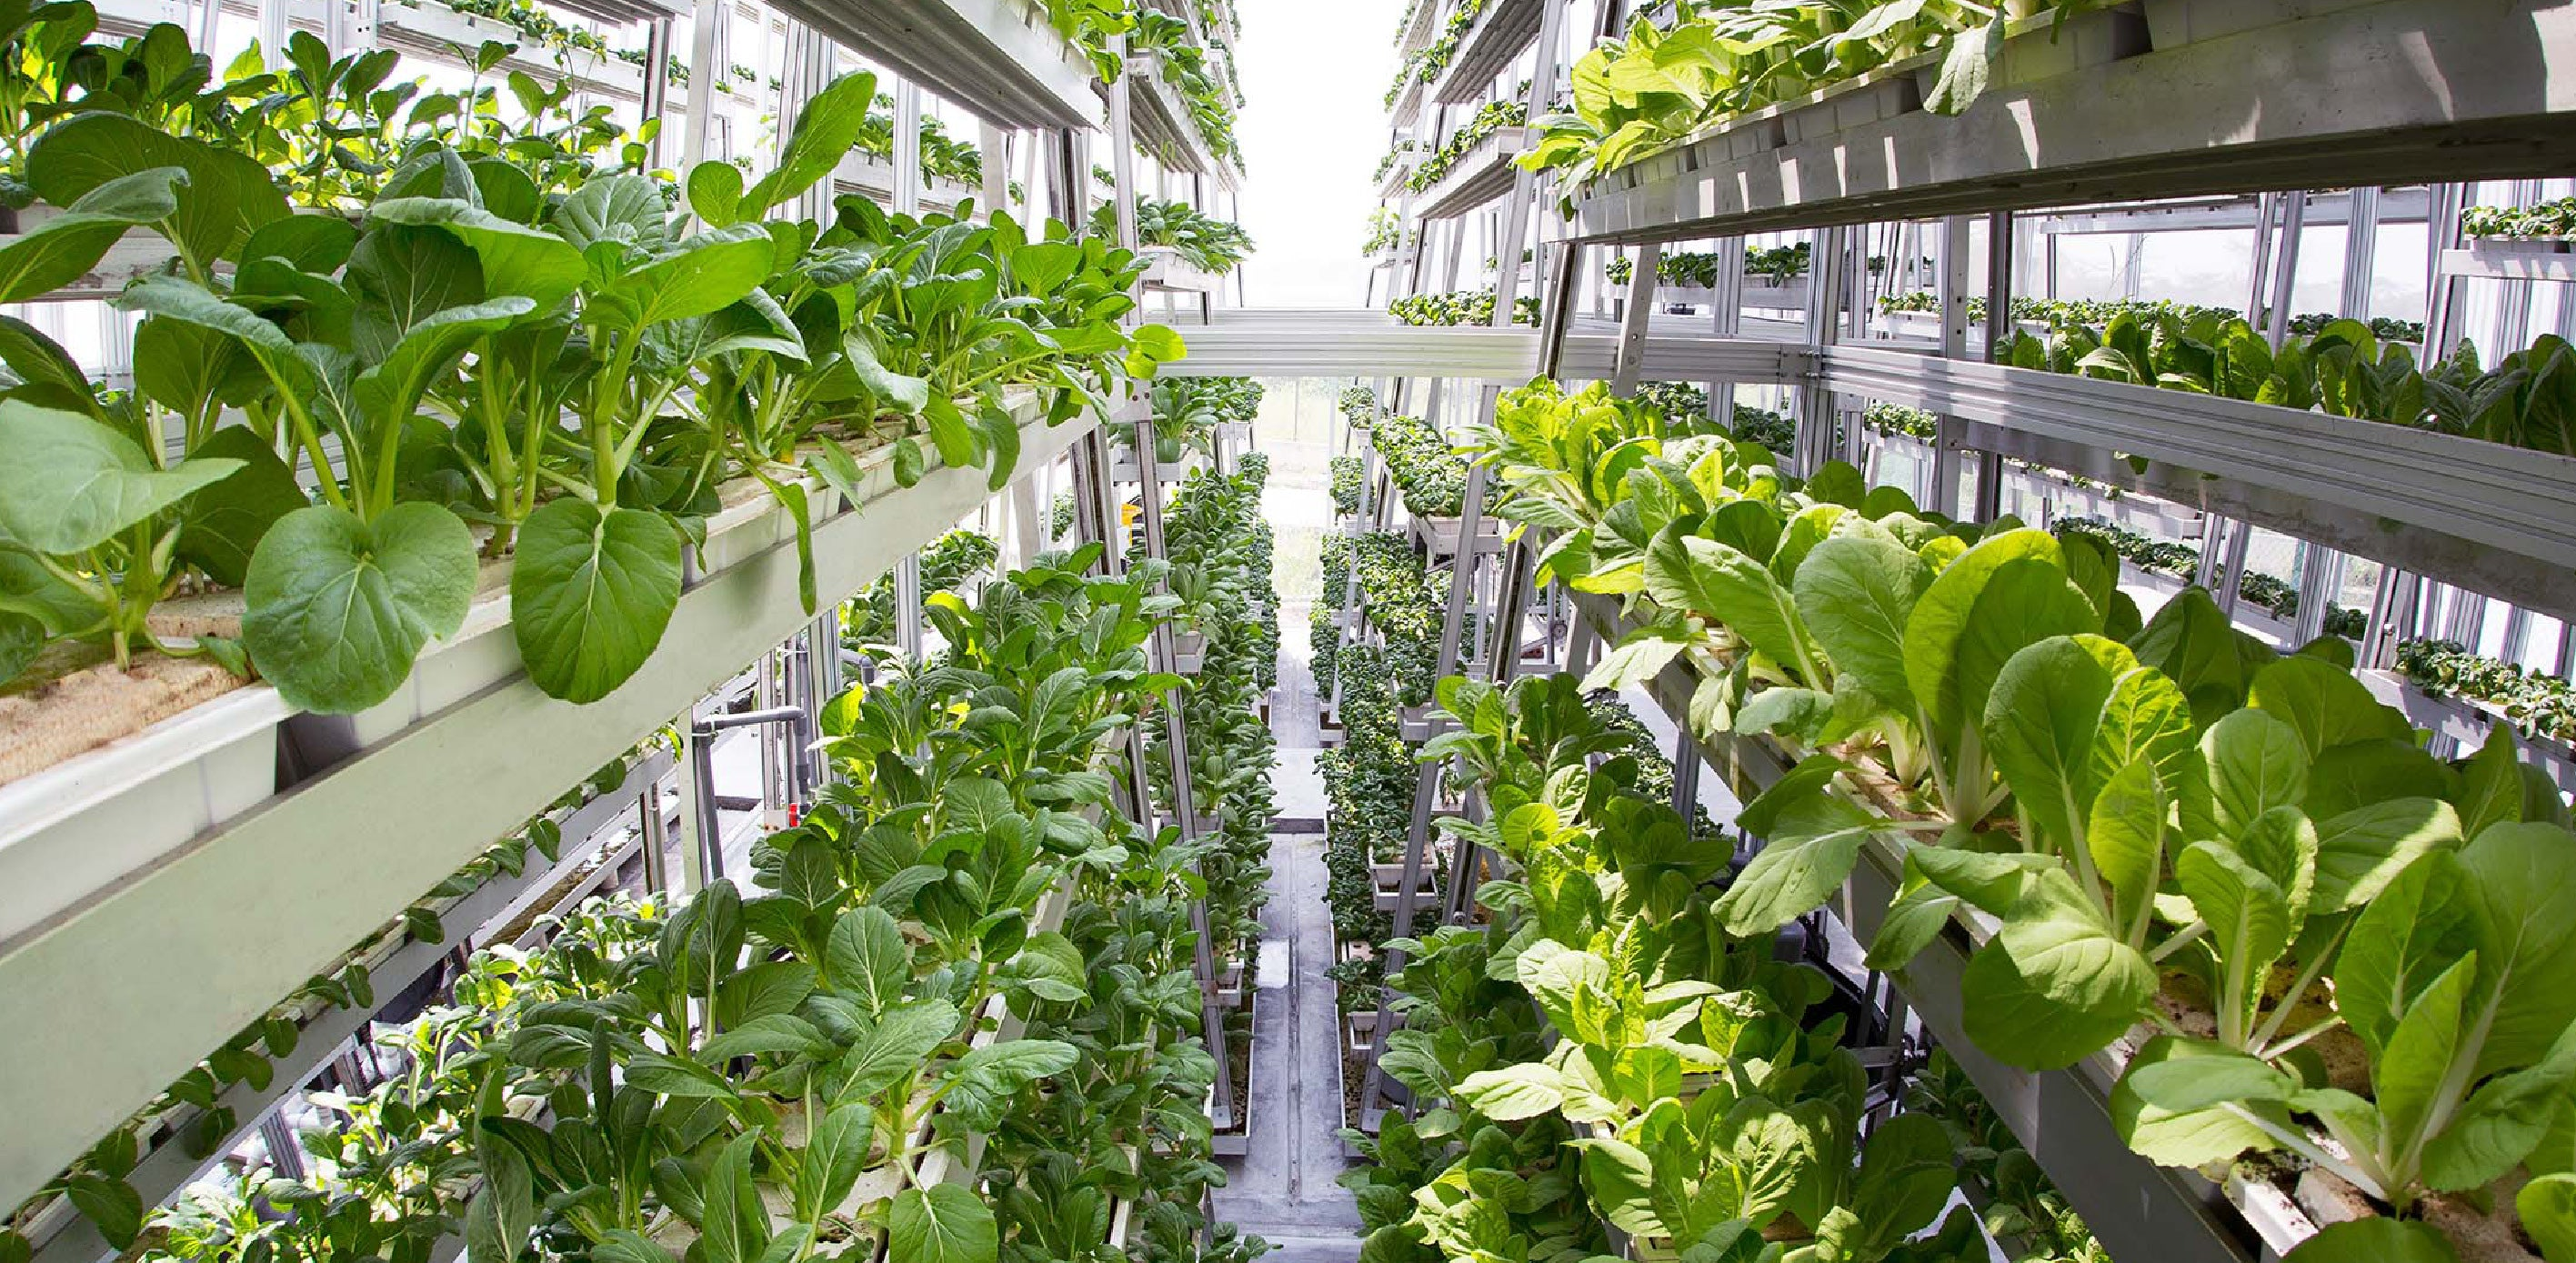 Are indoor vertical farms sustainable farming?